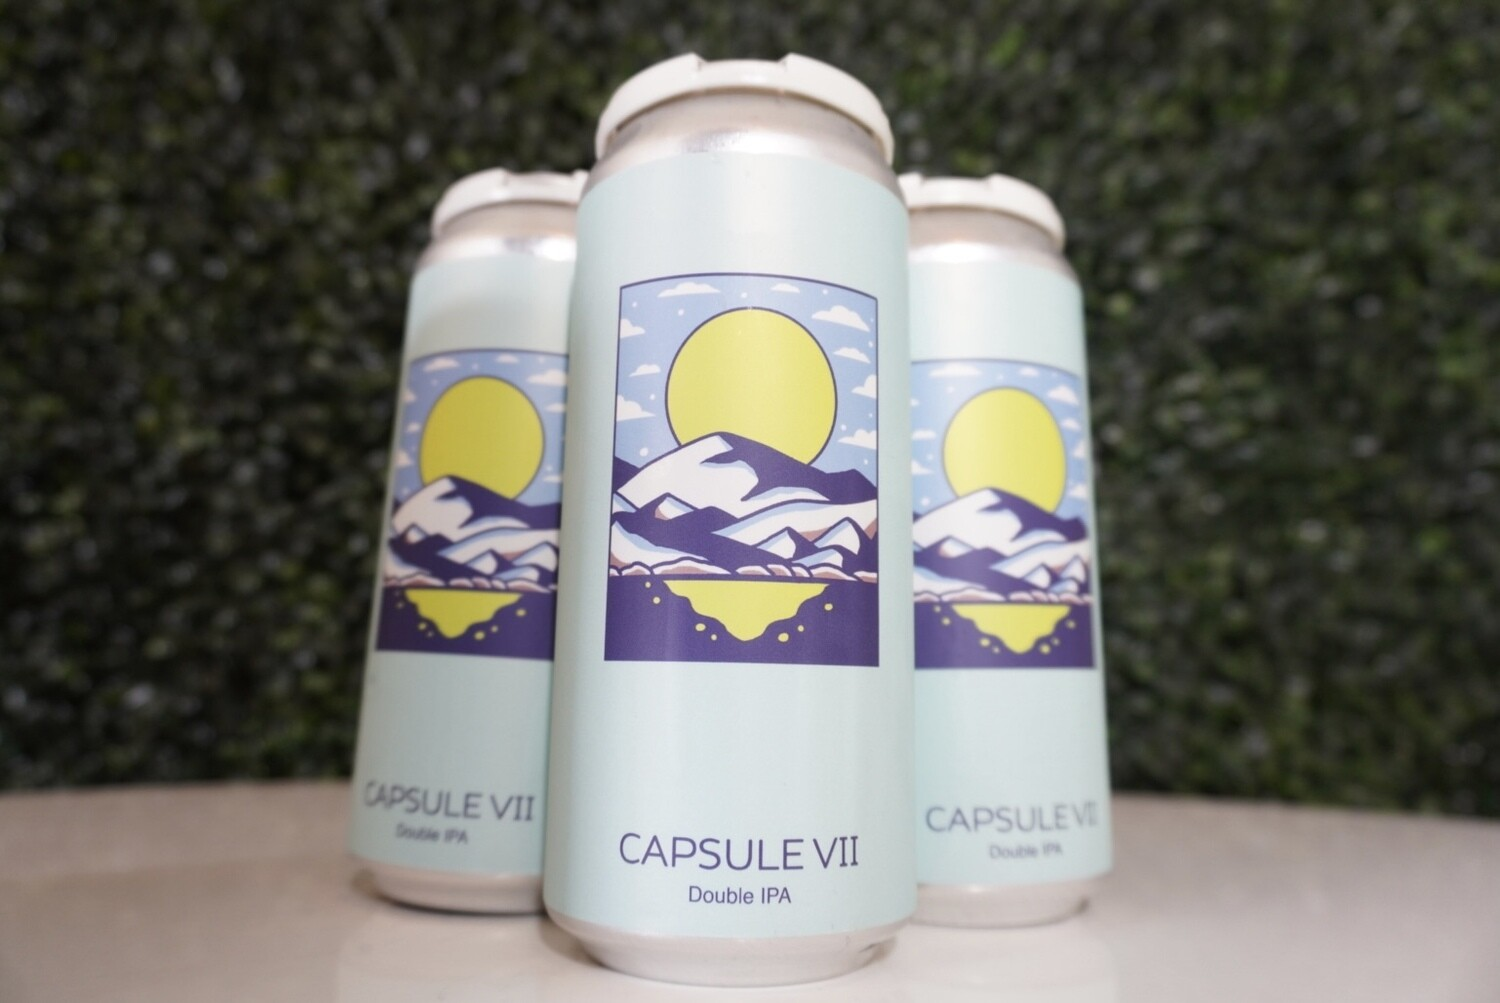 Hudson Valley - Capsule VII - Double IPA - 8% ABV - 16oz Can